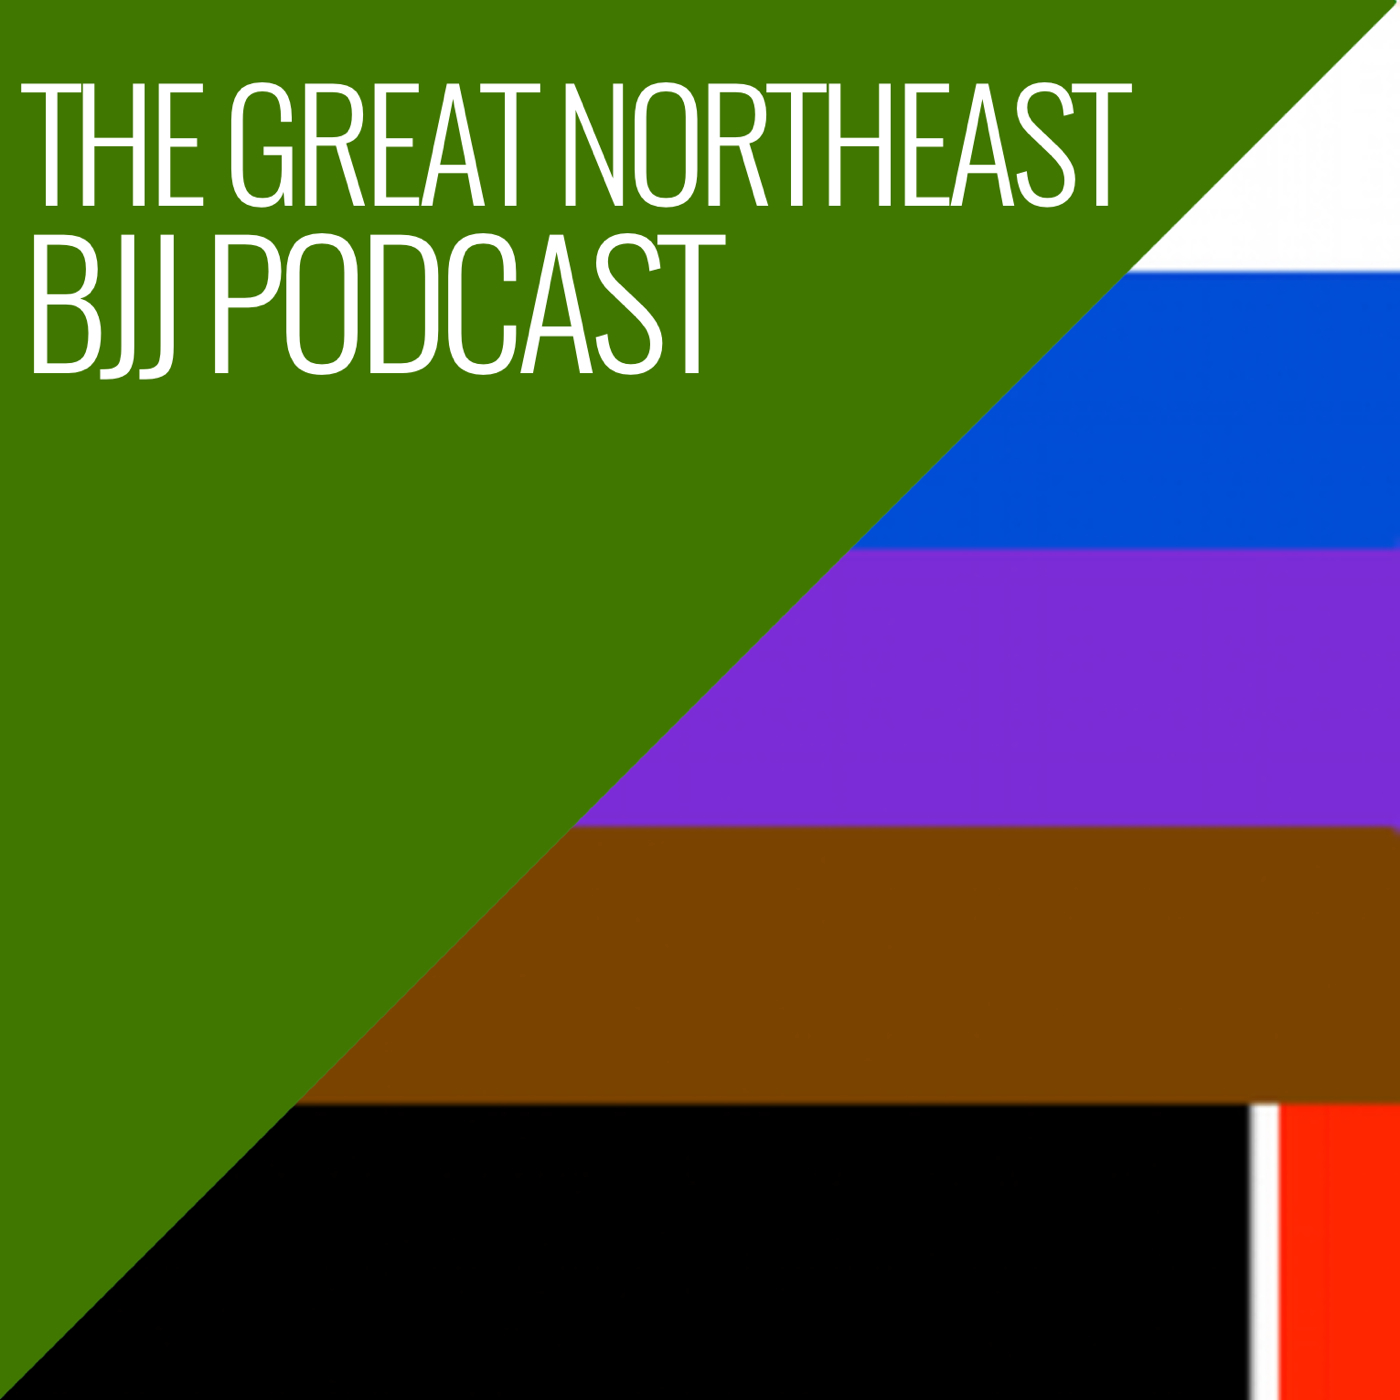 GREAT NORTHEAST BJJ PODCAST